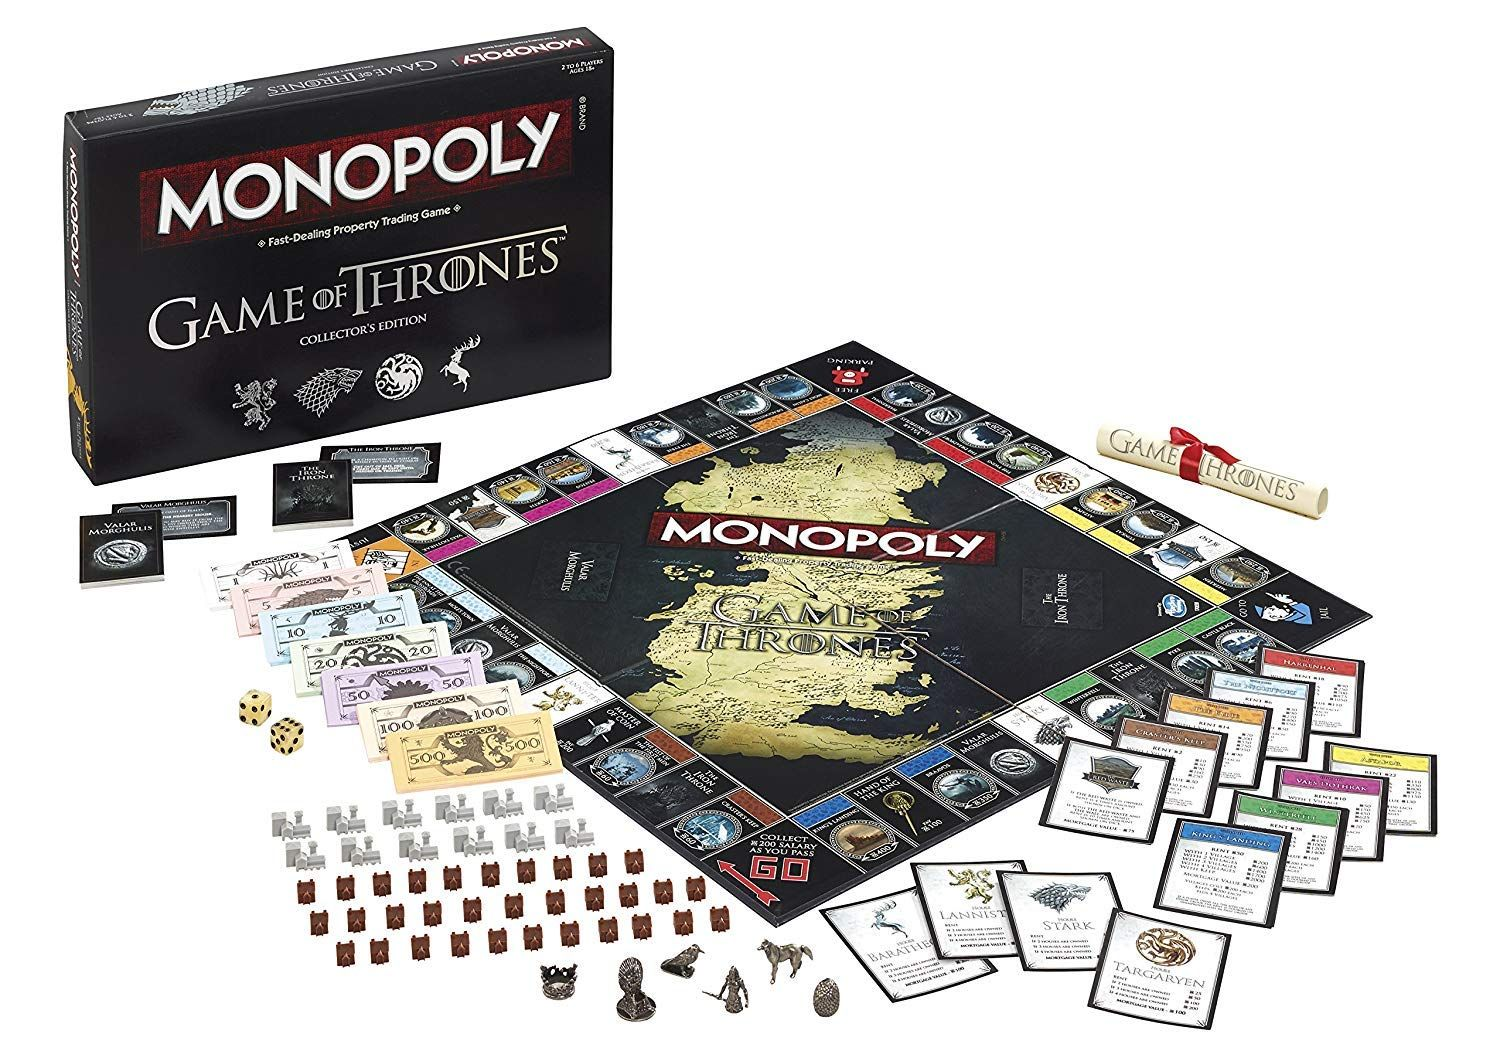 Grab Game Of Thrones Monopoly For Adults Before It All Ends Game Of Thrones Merchandise Card Games For Kids Hbo Game Of Thrones